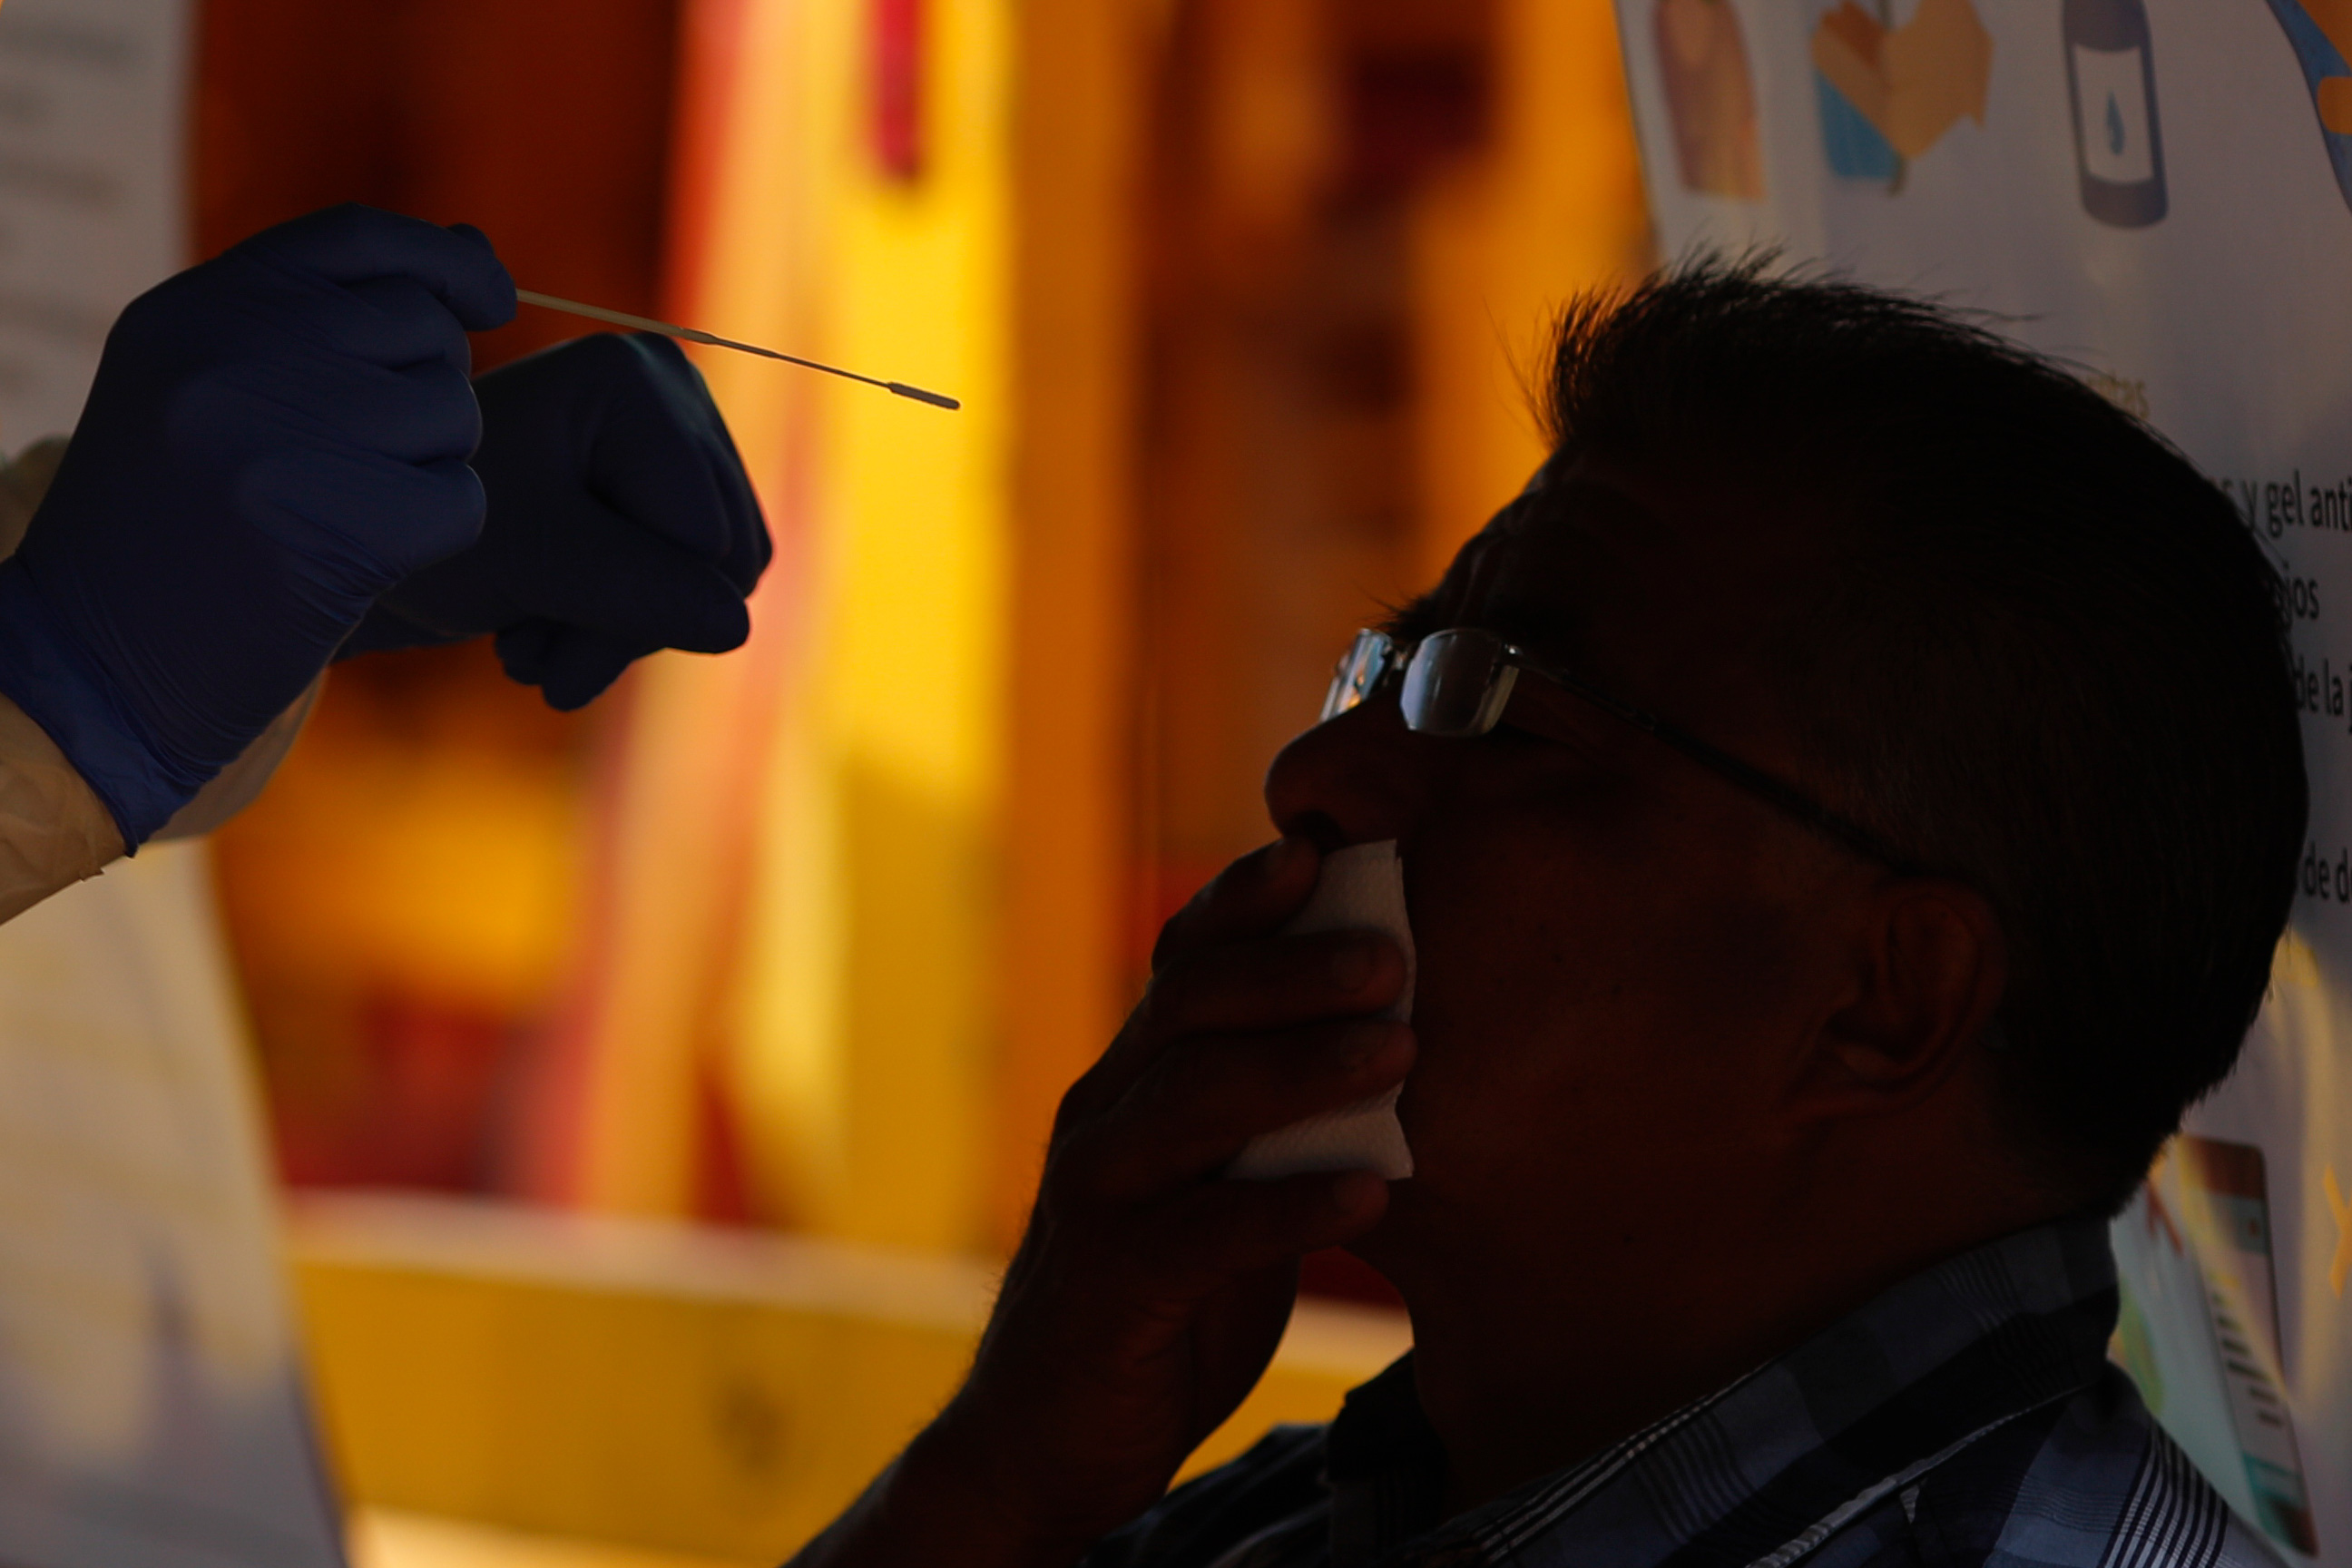 A doctor prepares to take a nasal swab for a COVID-19 test in Mexico City on September 10.